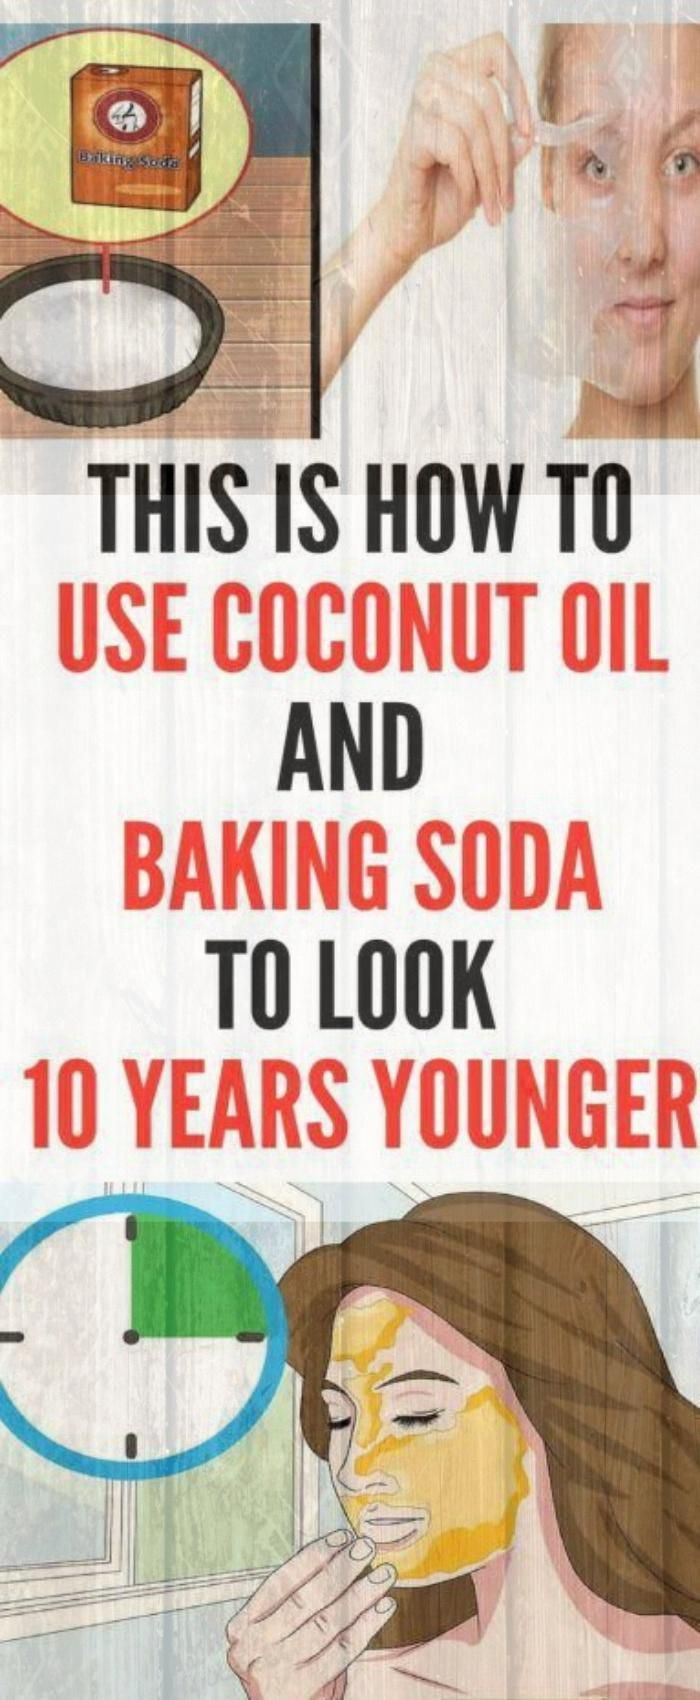 Coconut Oil Can Make You Look 10 Years Younger If You Use It For 2 Weeks #health #fitness #beauty